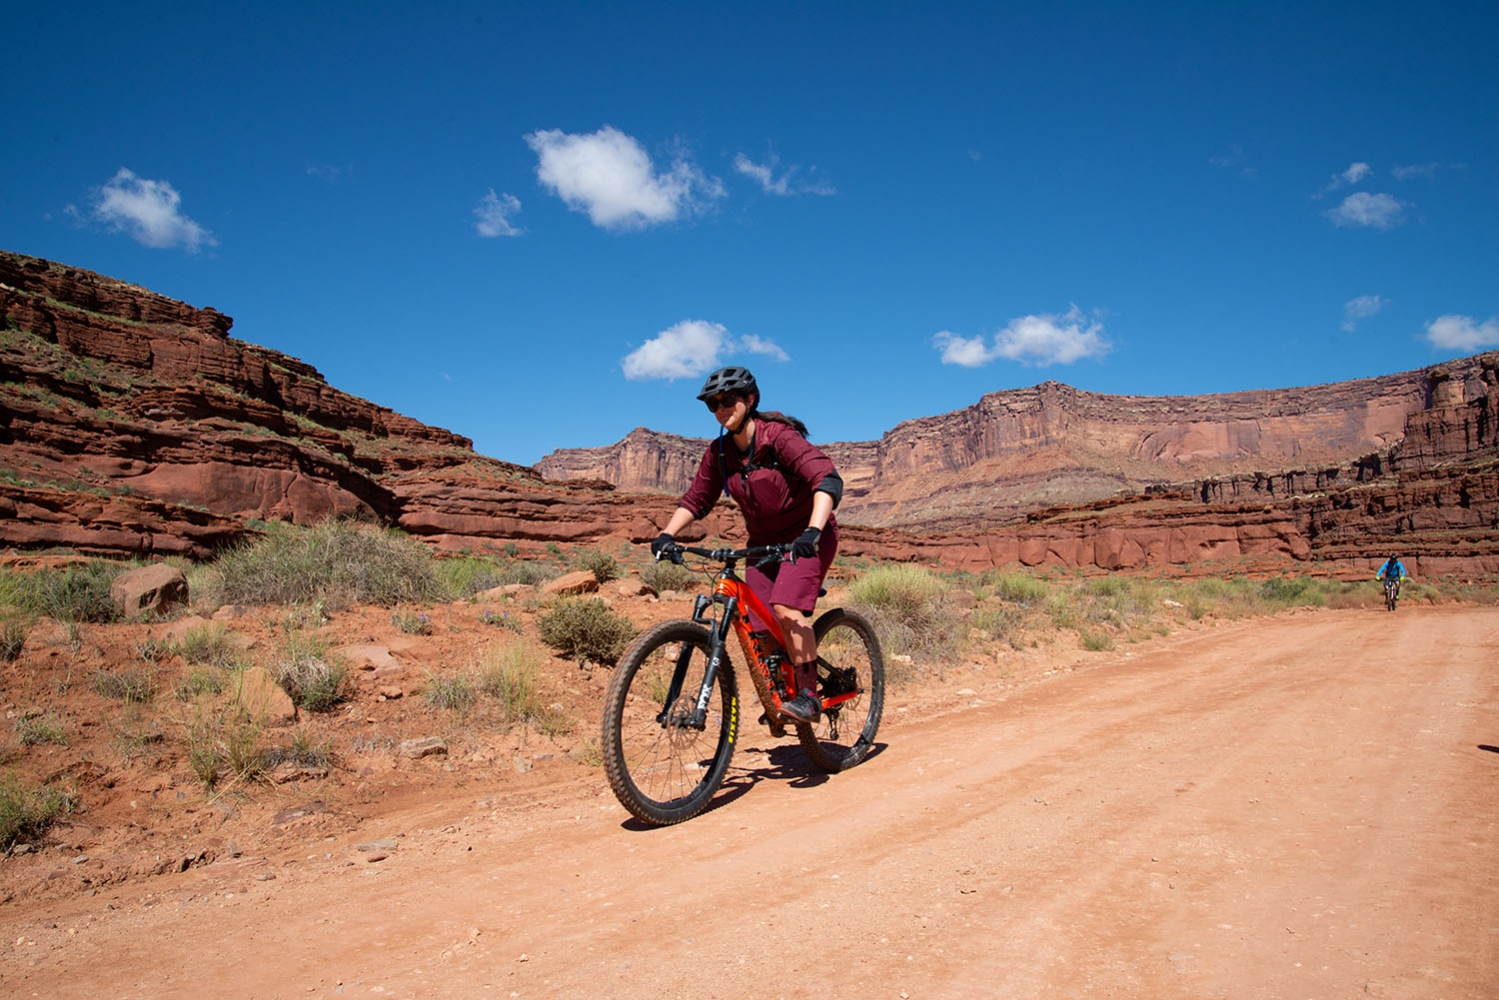 Canyonlands-National-Park-Full-Day-Guided-Mtb-Tour-Past-Shafer